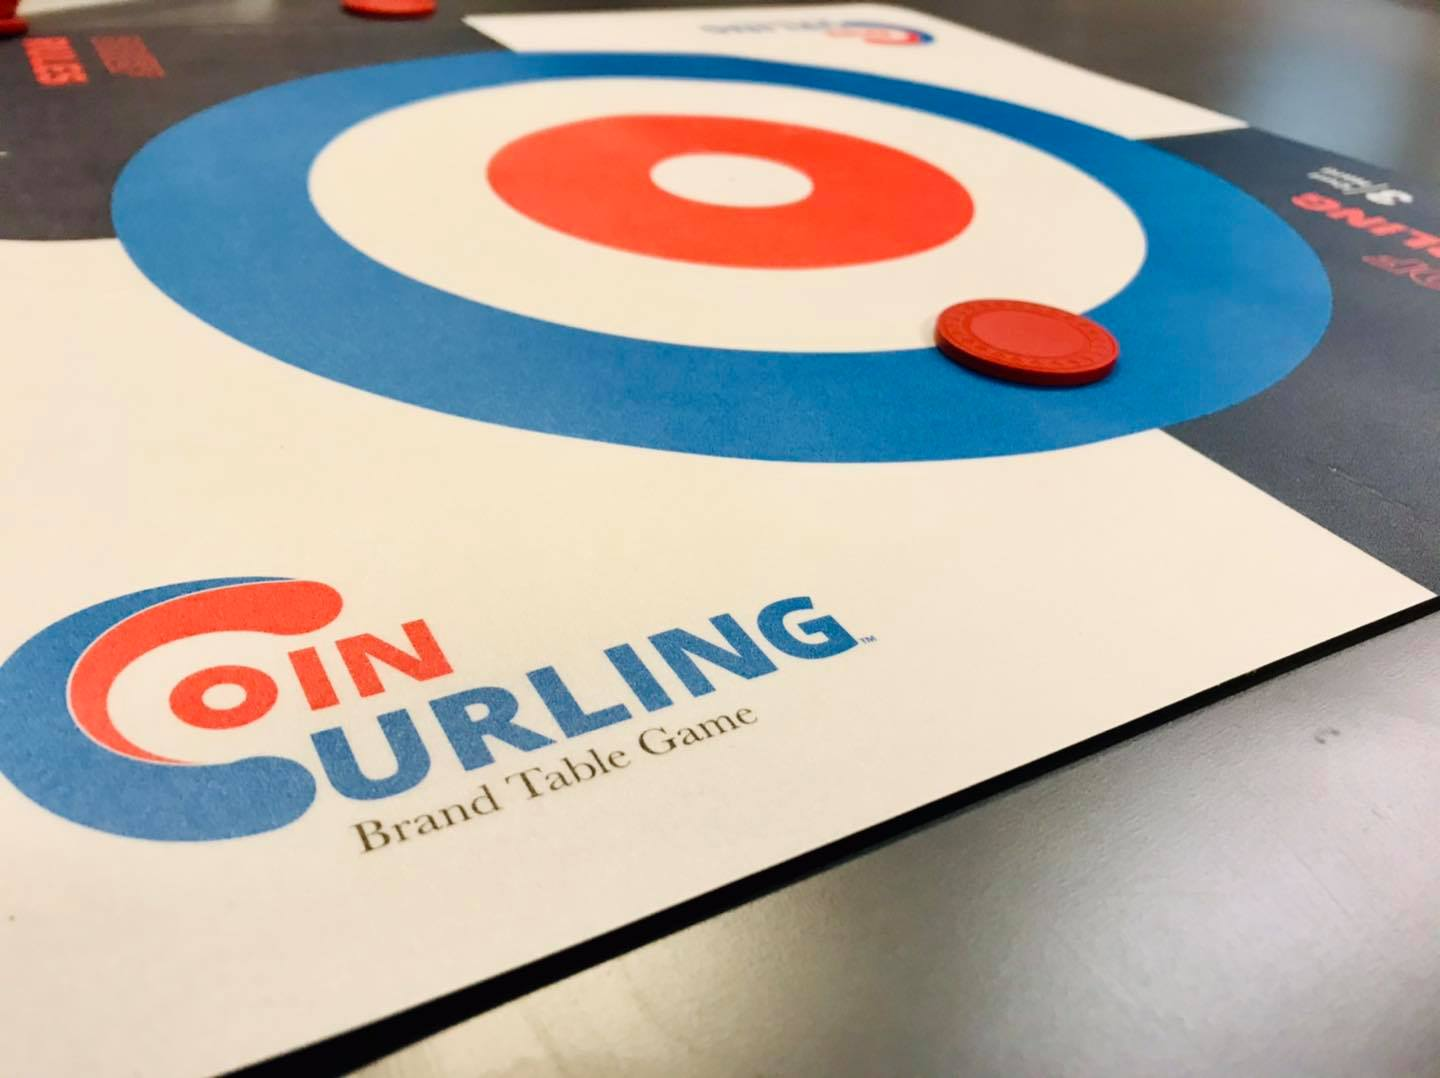 coin curling tabletop game katy tx board game cafe battlehops brewing